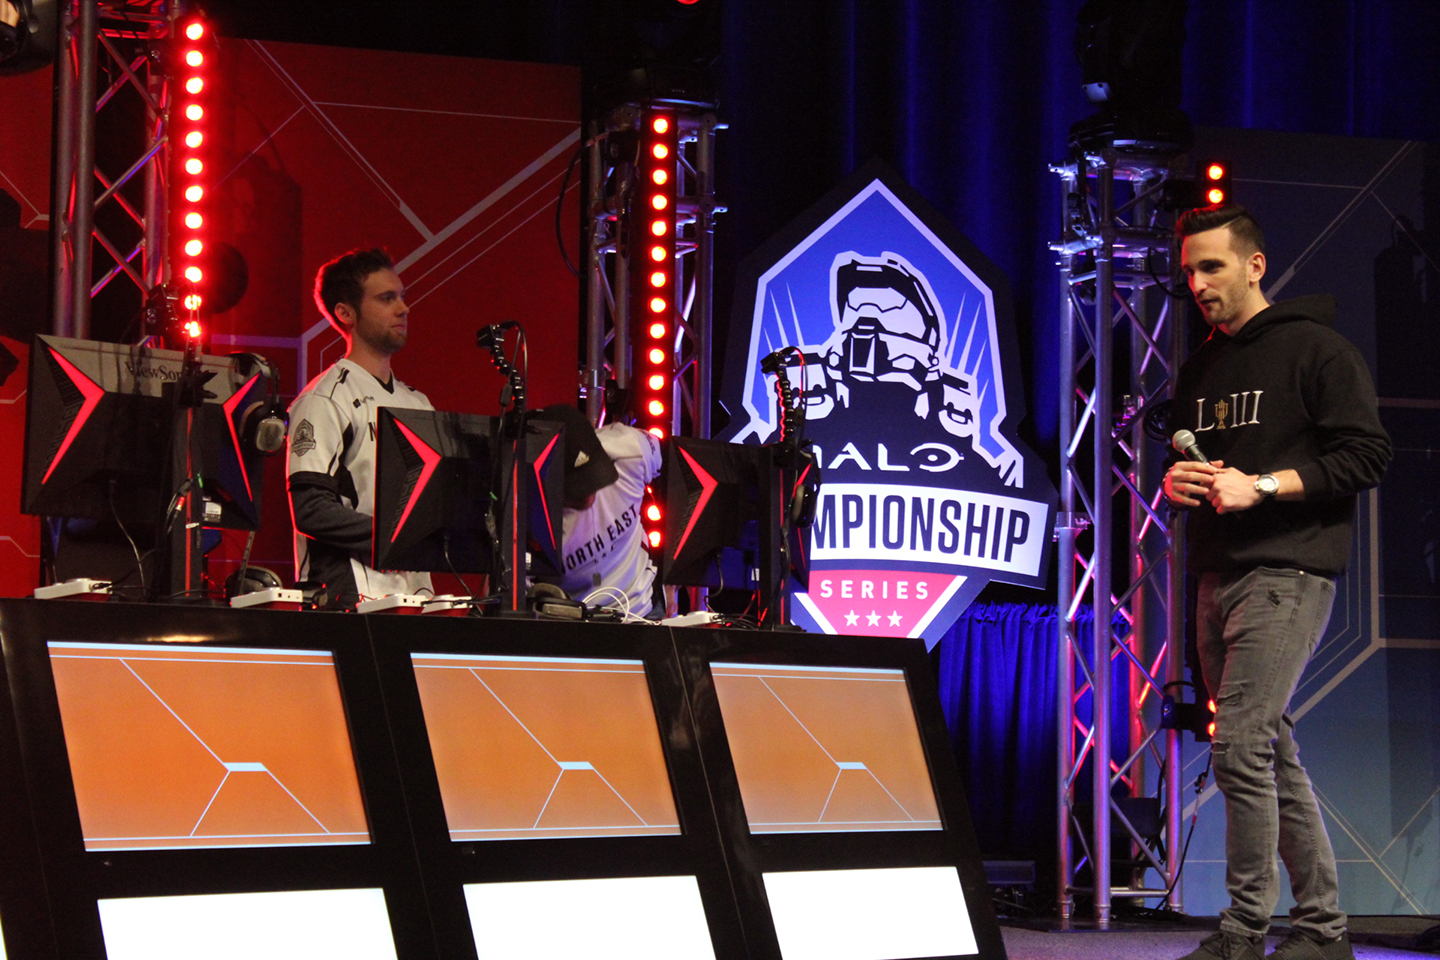 The Halo Championship Series Invitational began at the SXSW Gaming Tournament Stage.